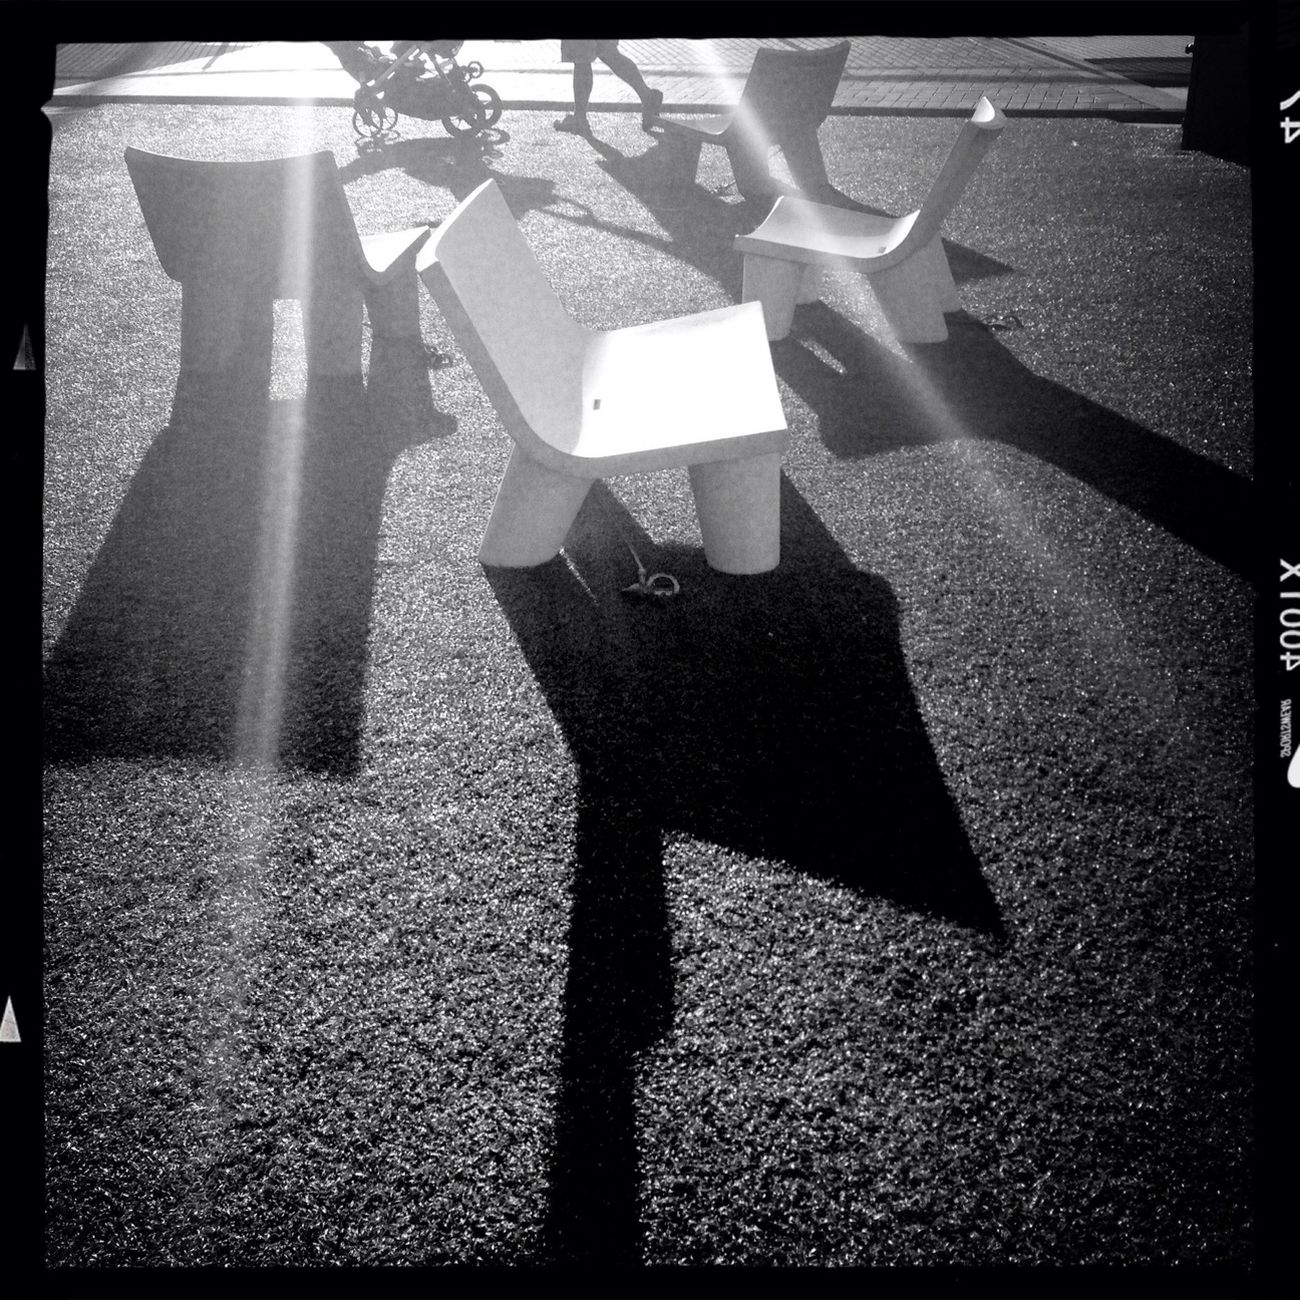 Ray of light Streetphotography Hipstamatic AO DLX Film Blackandwhite